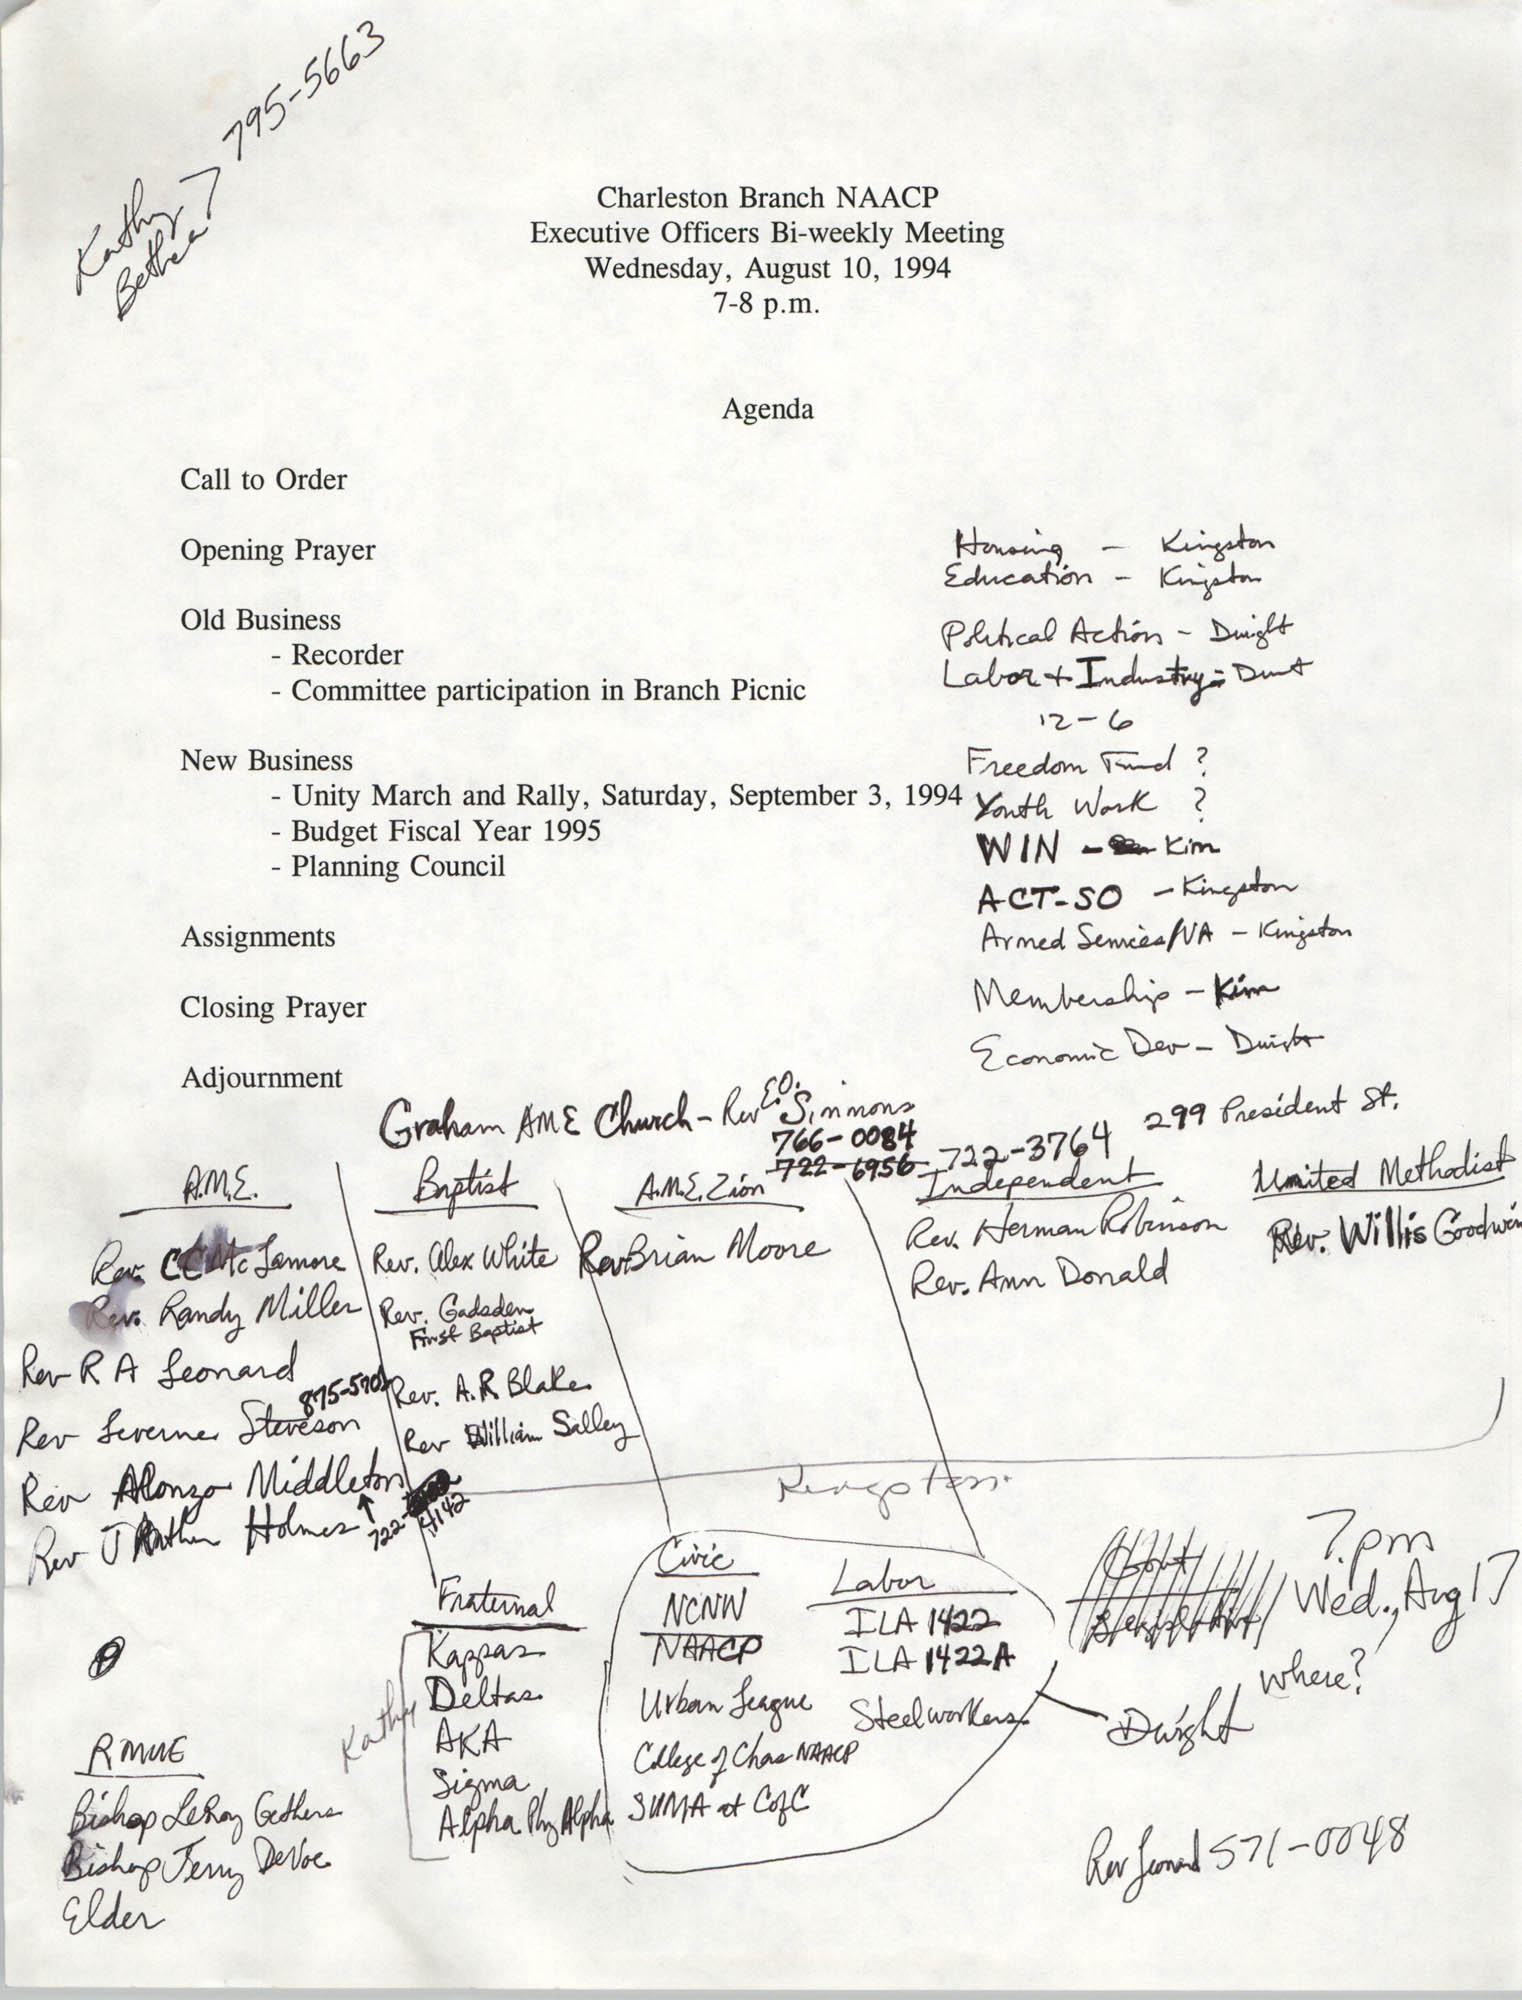 Agenda, Charleston Branch of the NAACP, Executive Officers Bi-weekly Meeting, August 10, 1994